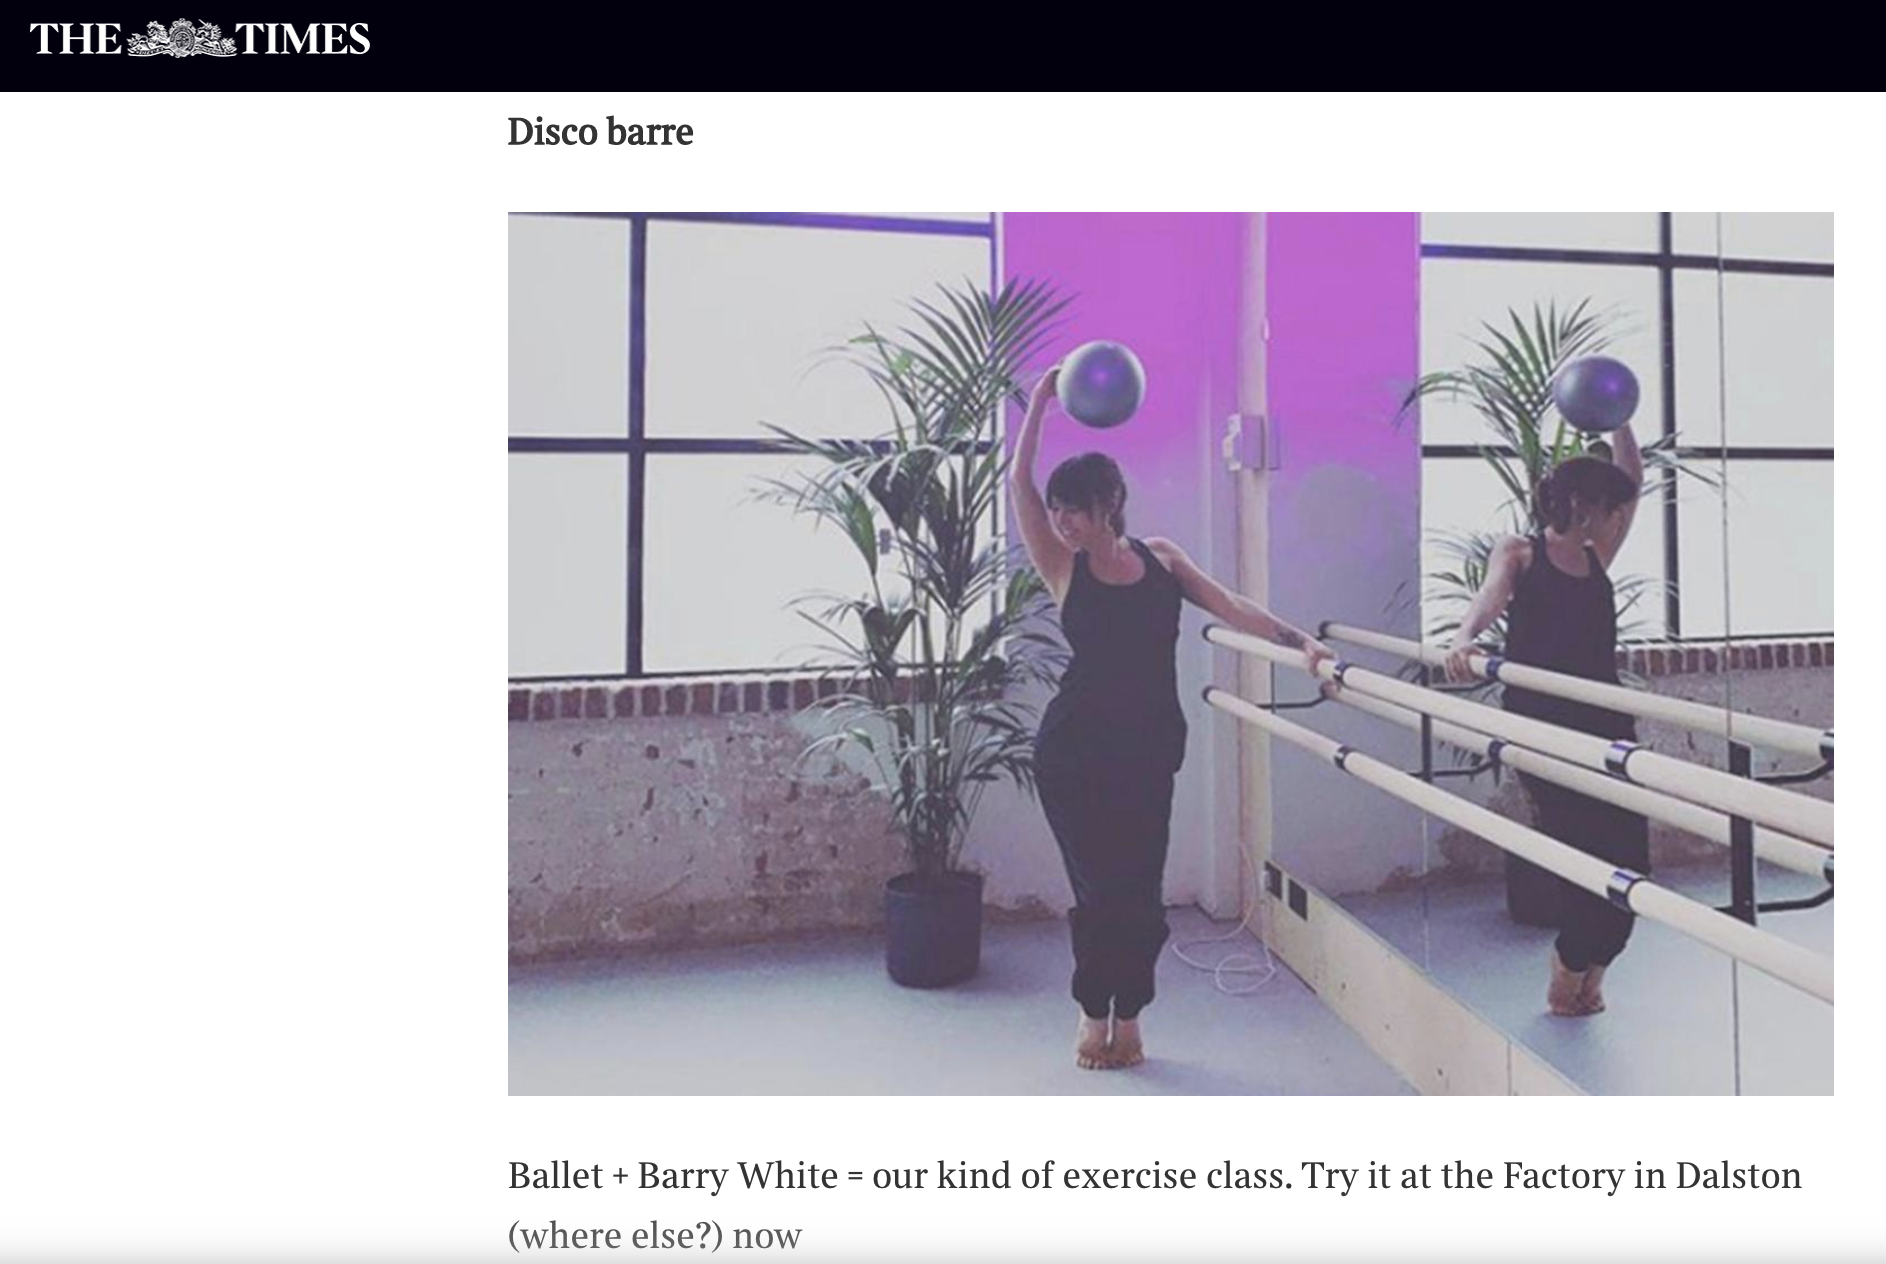 DISCO BARRE X THE TIMES